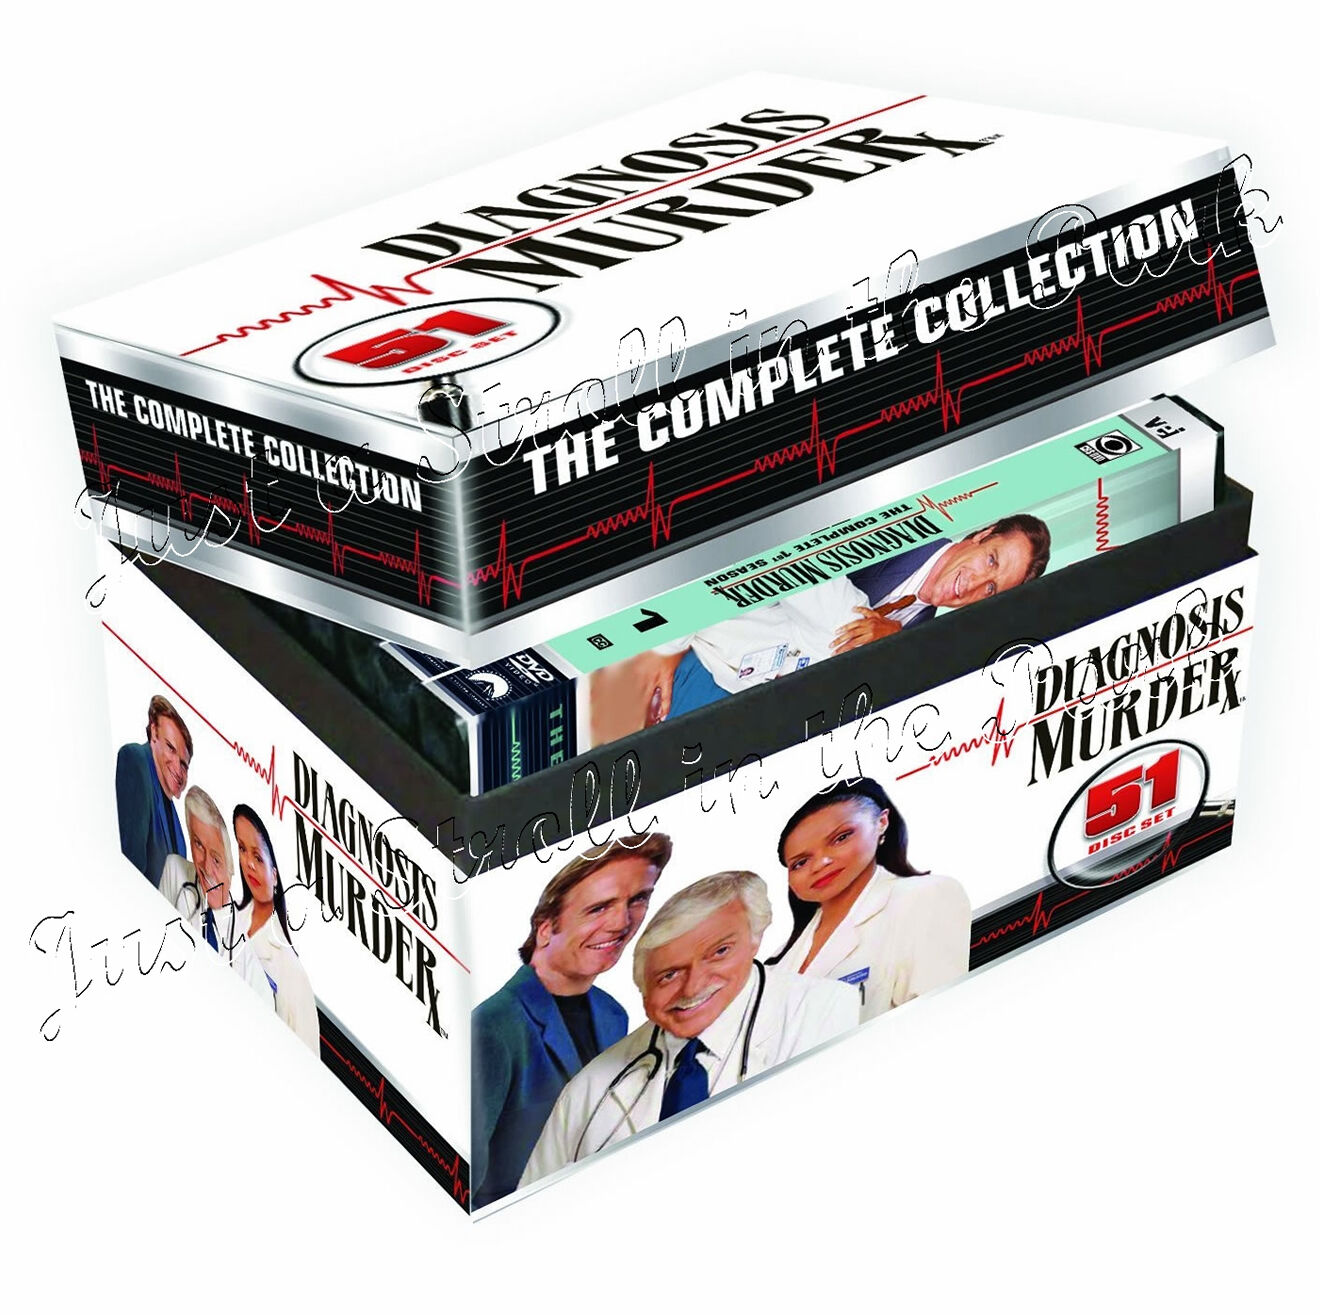 Diagnosis Murder: Complete Series TV Seasons 1-8 + 5